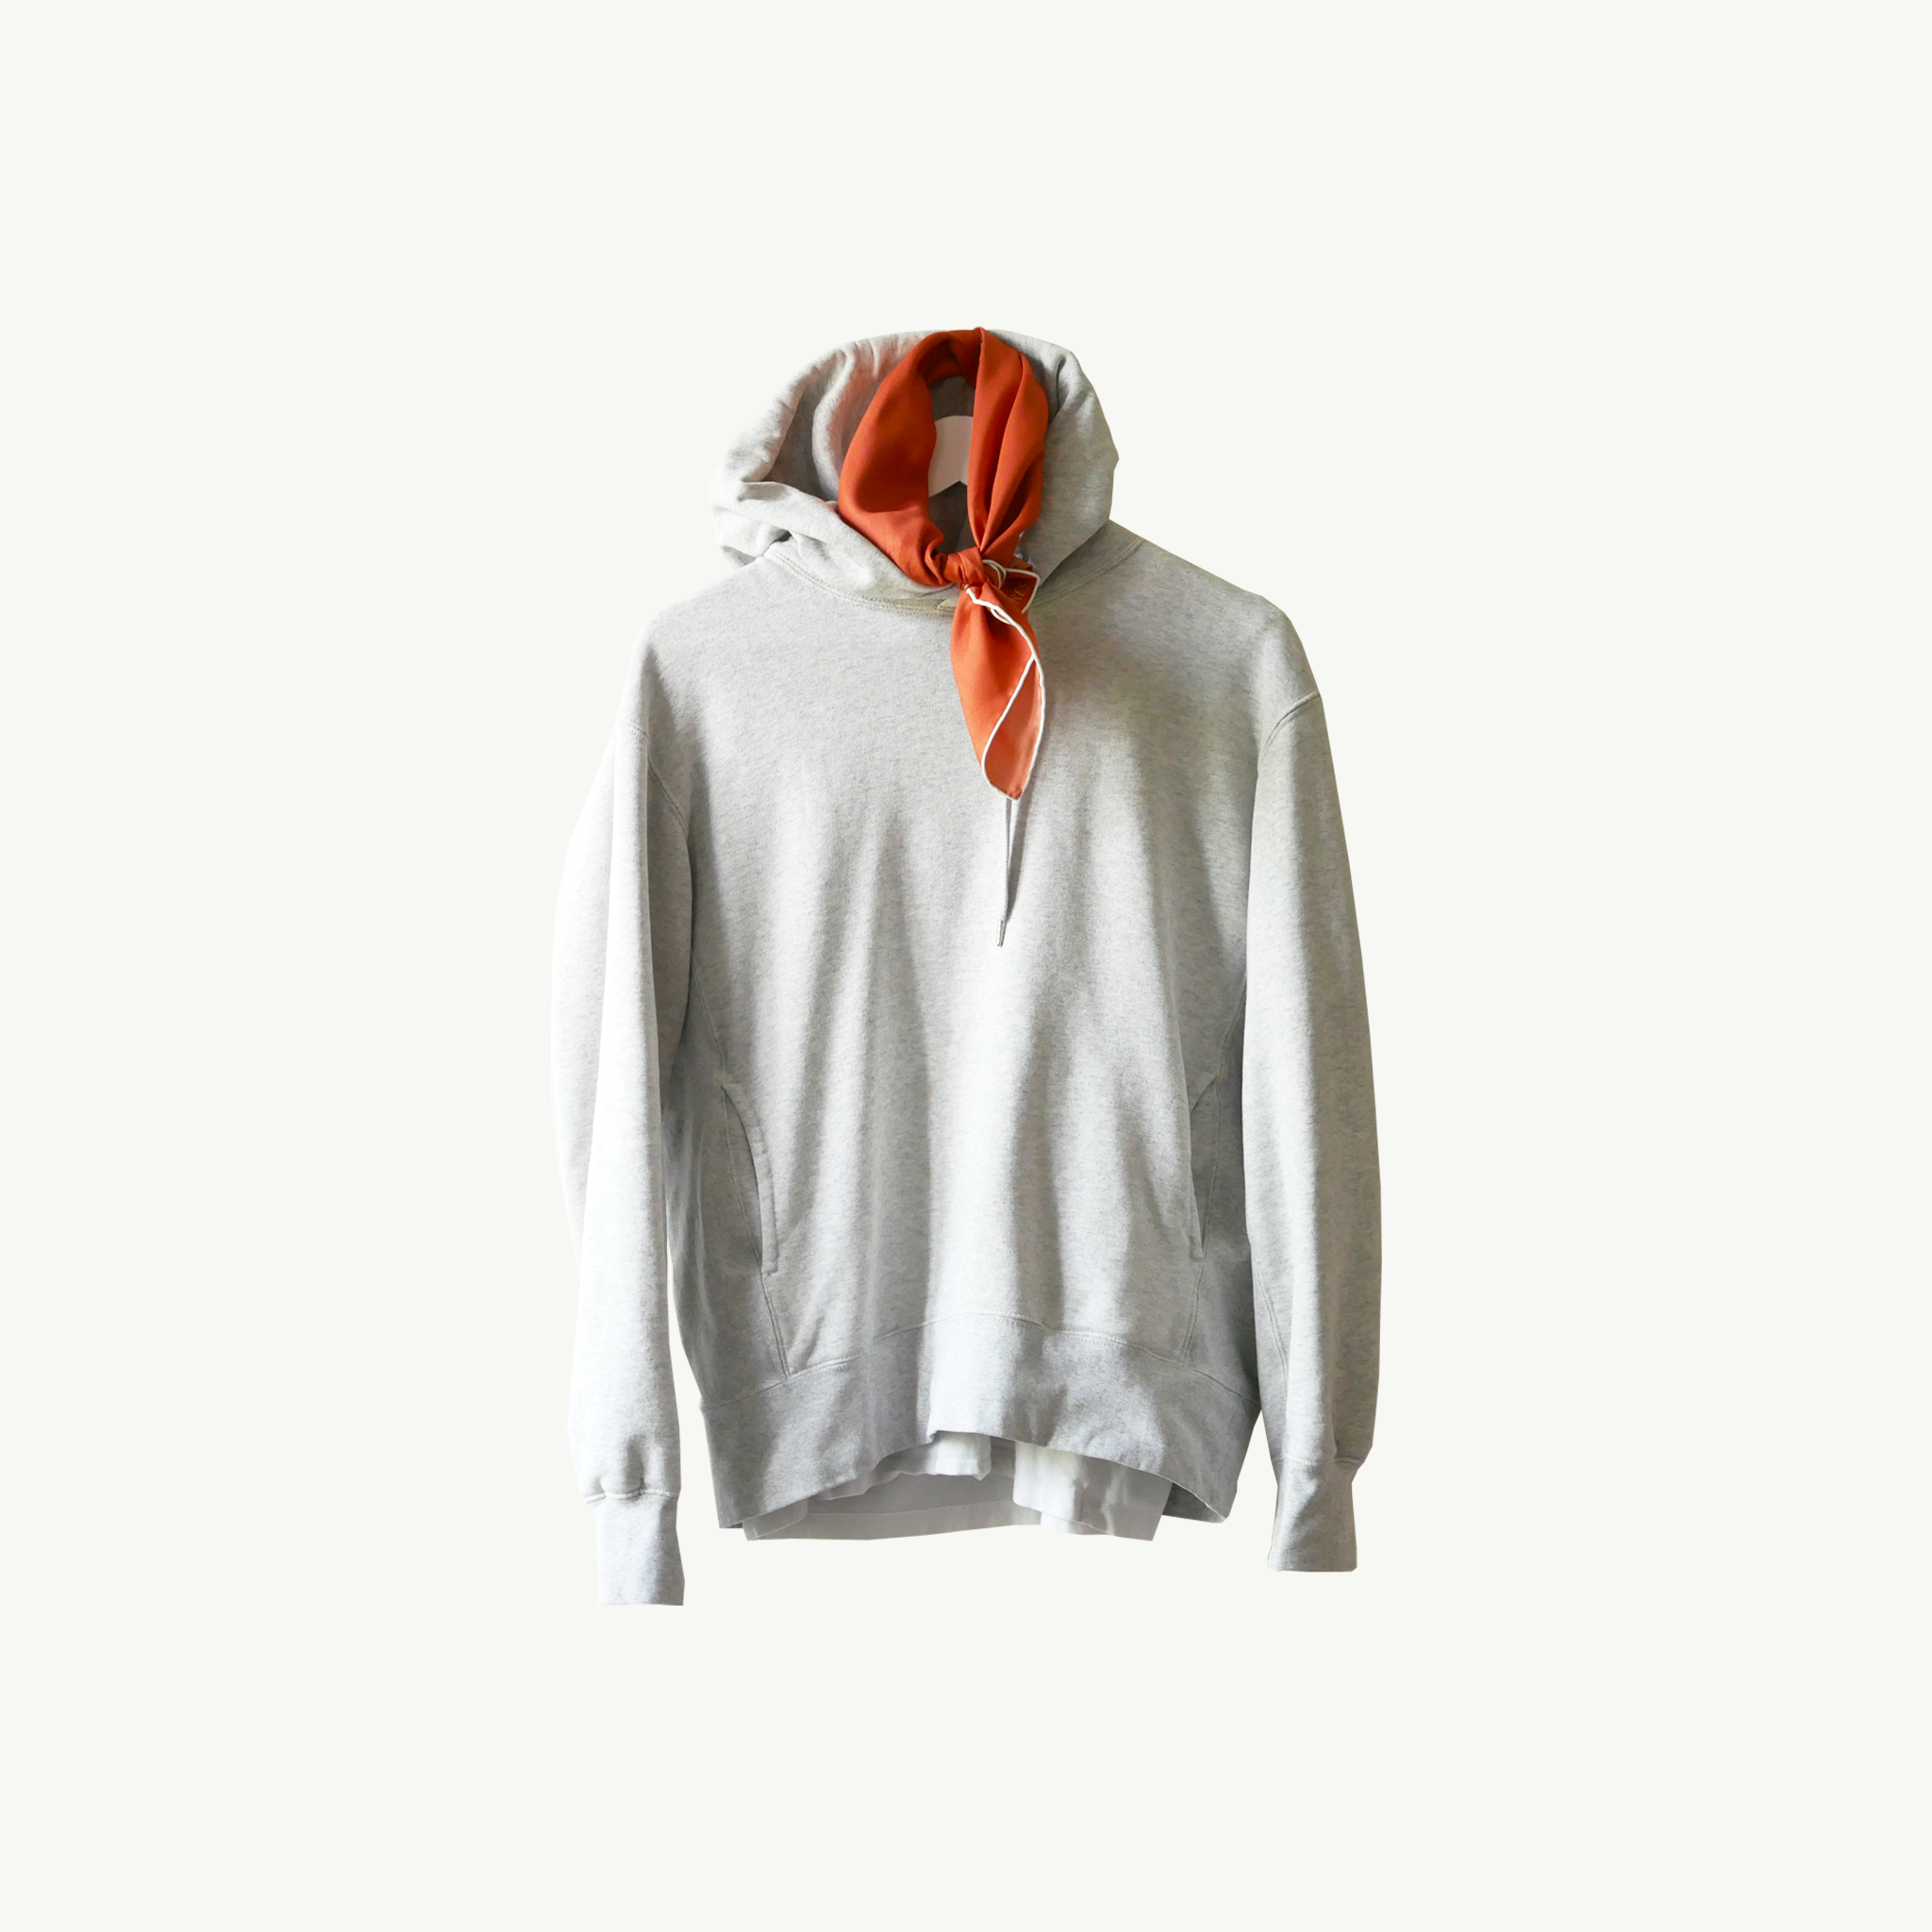 Les Belles Heures Senigallia, 15h32 100% hand rolled cashmere, modal and silk scarf worn with a grey hoodie over a white tee